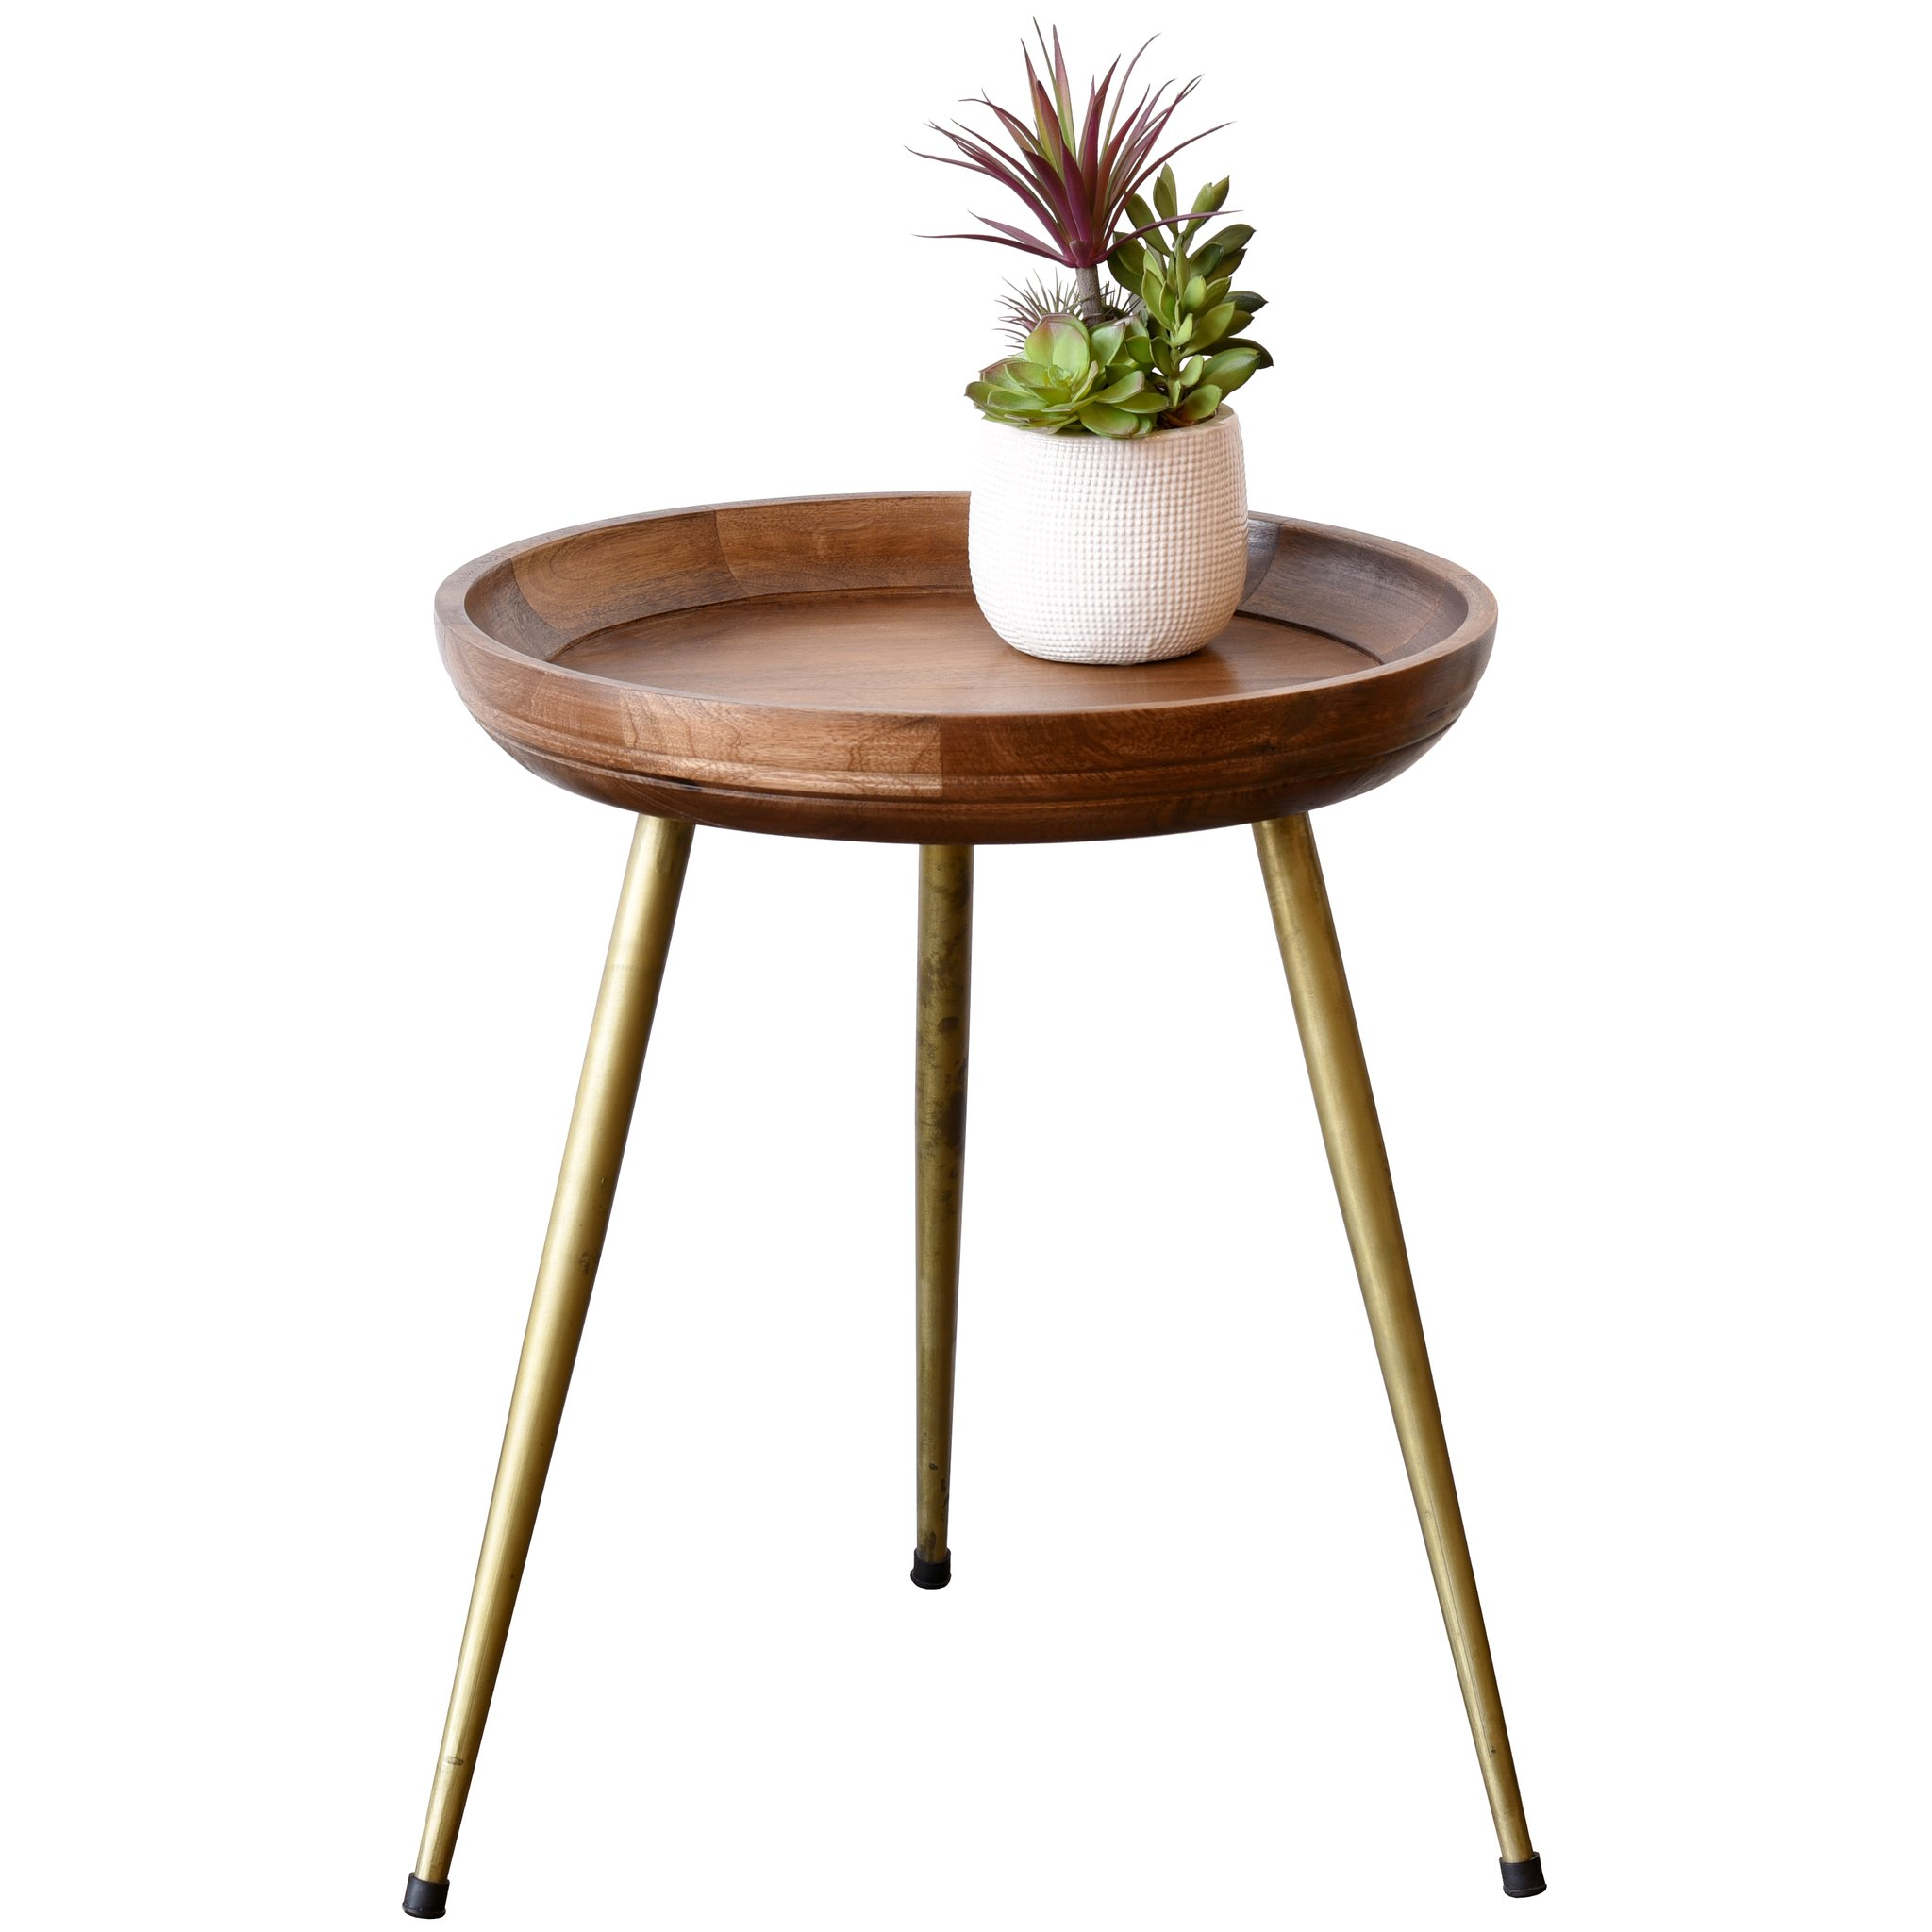 end tables woodwaves round mid century modern retro wood table with gold legs accent brass skinny ikea cordless lamps for living room monarch side extra large coffee asian style